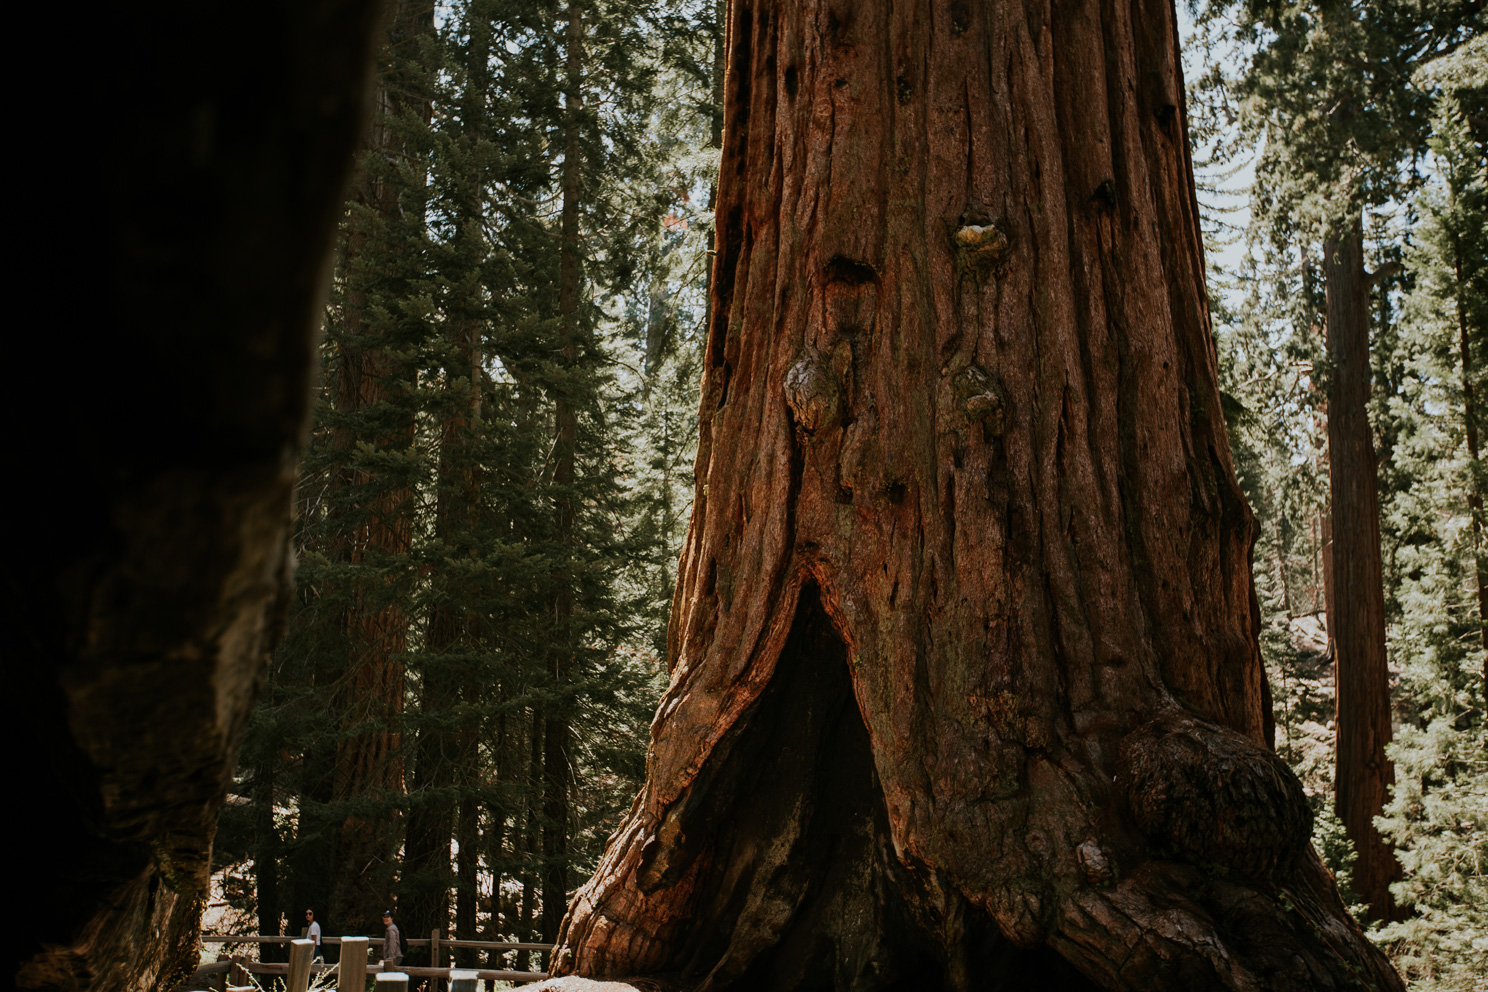 CindyGiovagnoli_California_Sequoia_Kings_Canyon_National_Park_trees_travel_road_trip-006.jpg